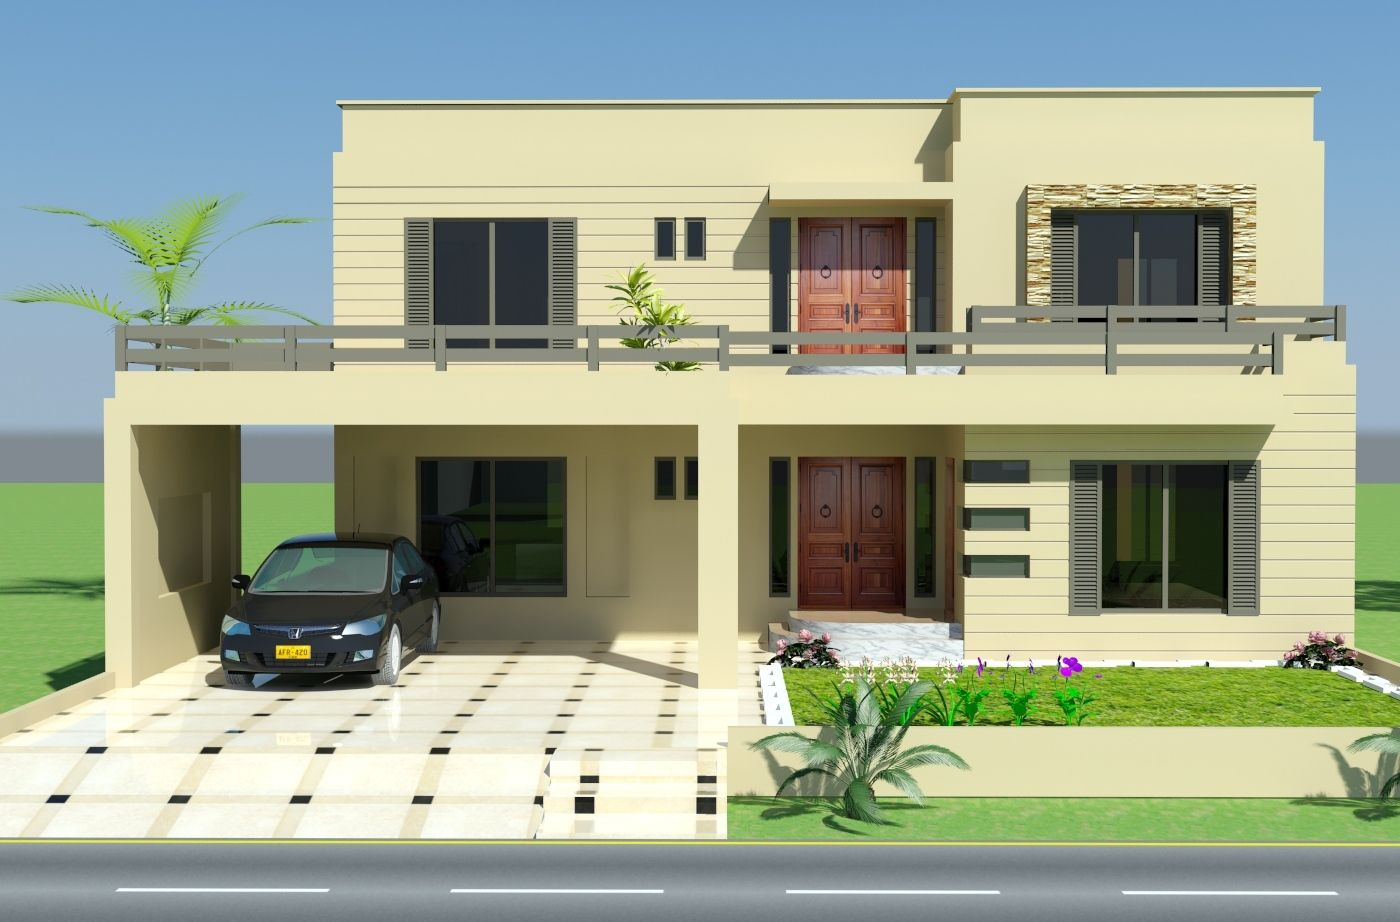 Exterior house design front elevation mi futura casa for Home exterior designs